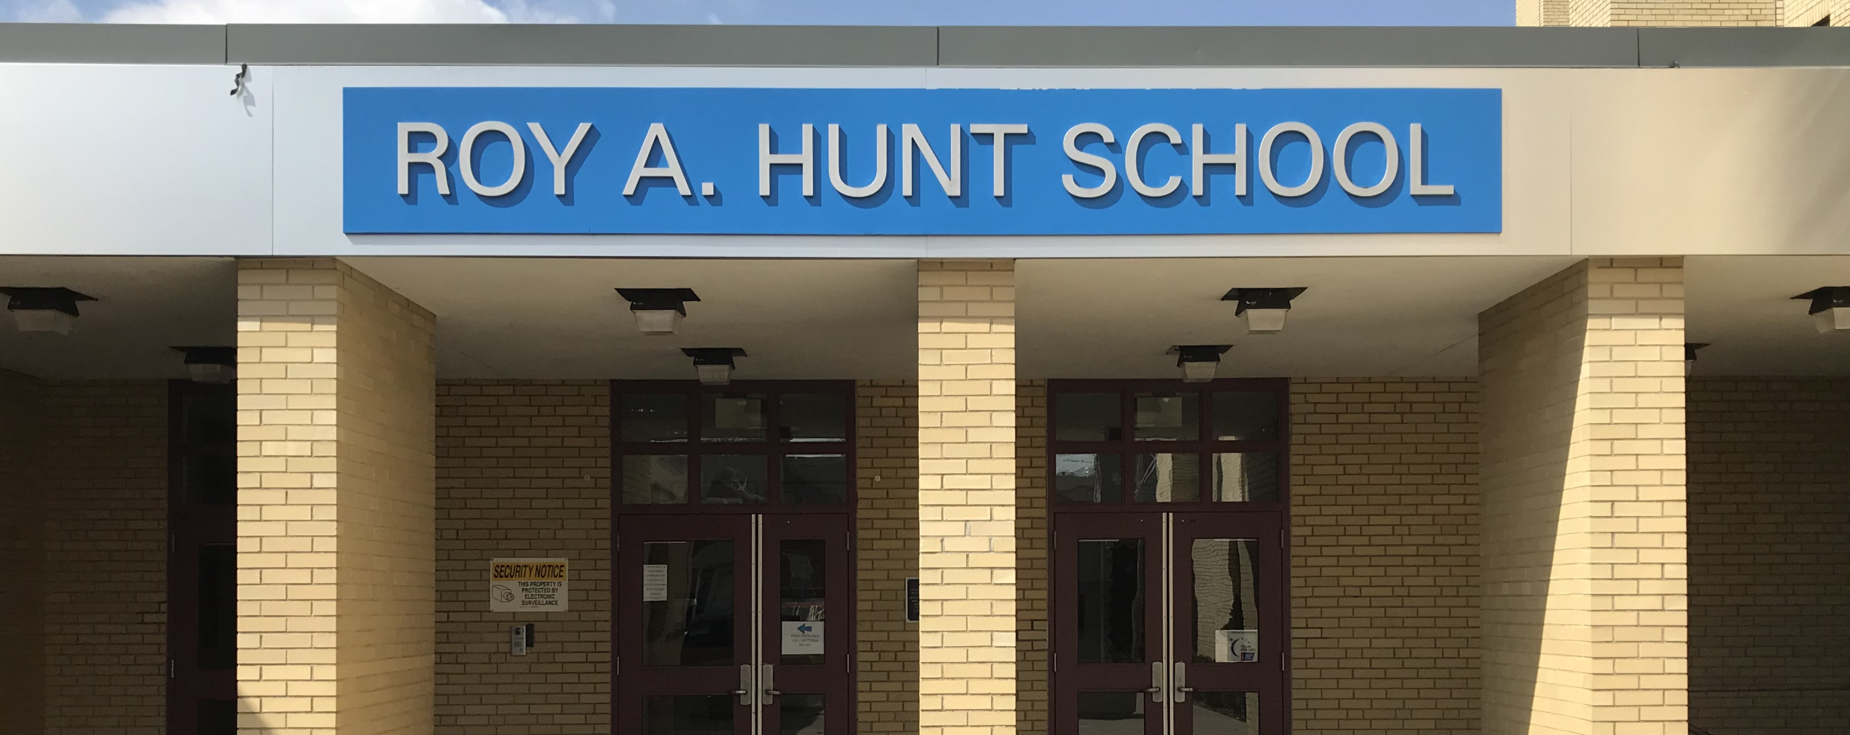 Roy A Hunt Elementary School Facade